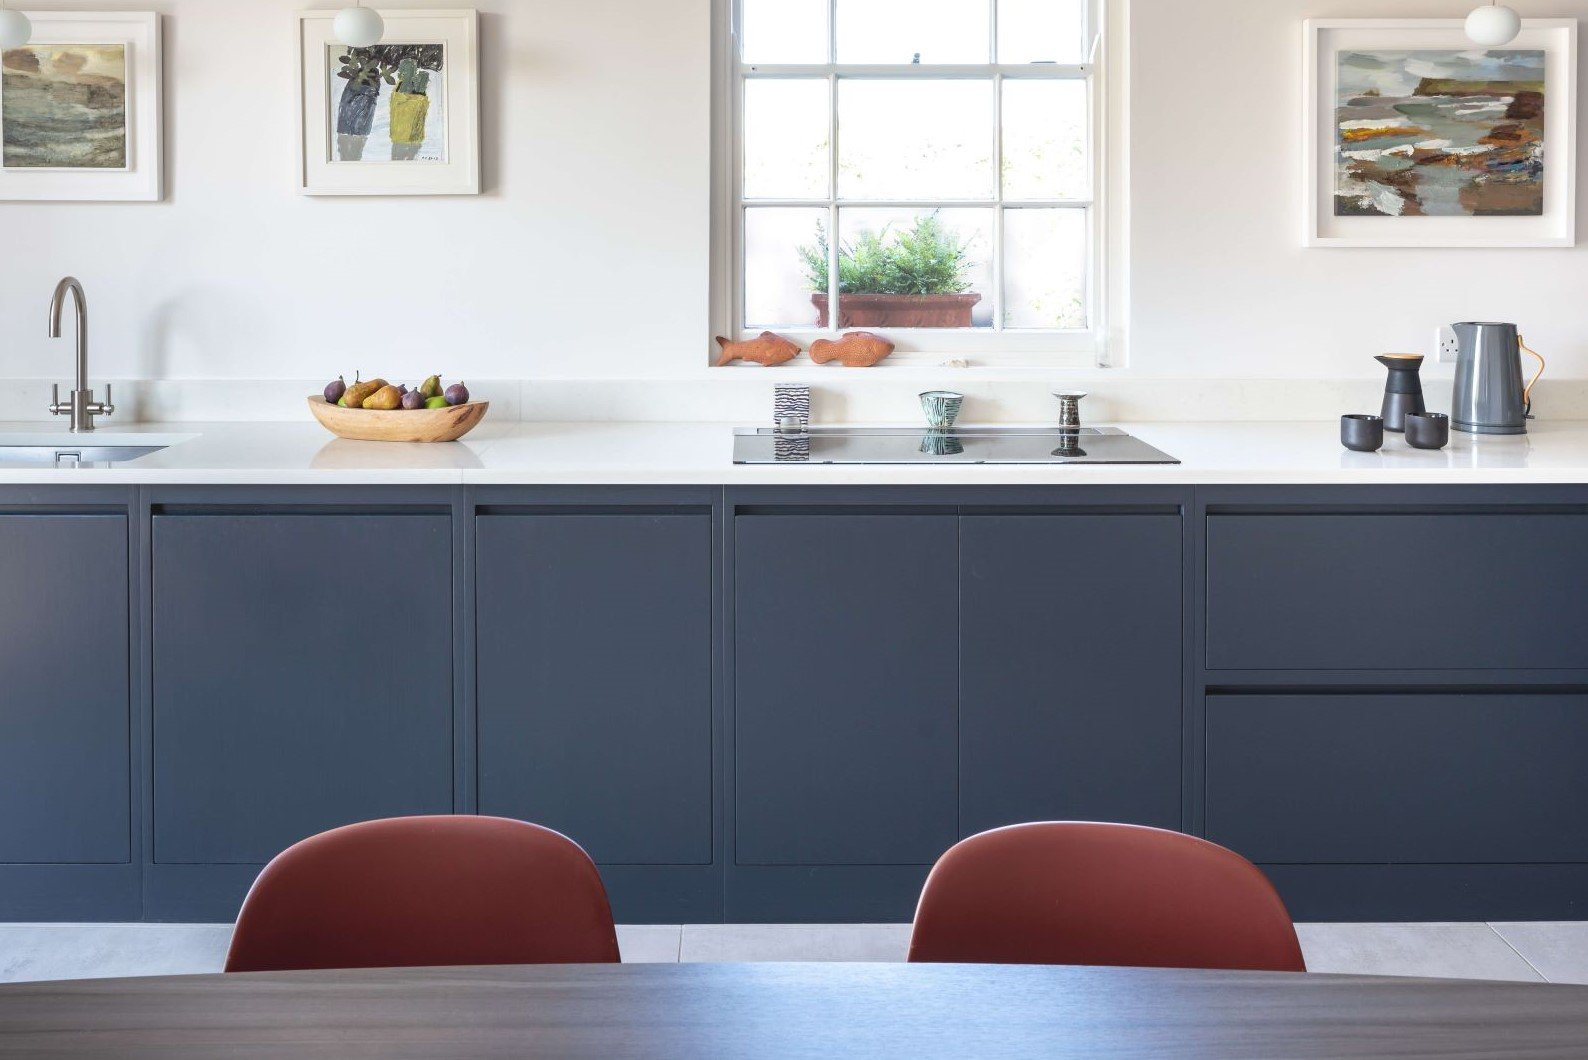 10 Kitchen Design Trends For 2020 - Be Ahead of the Curve ... on Kitchen Modern Design 2020  id=29651